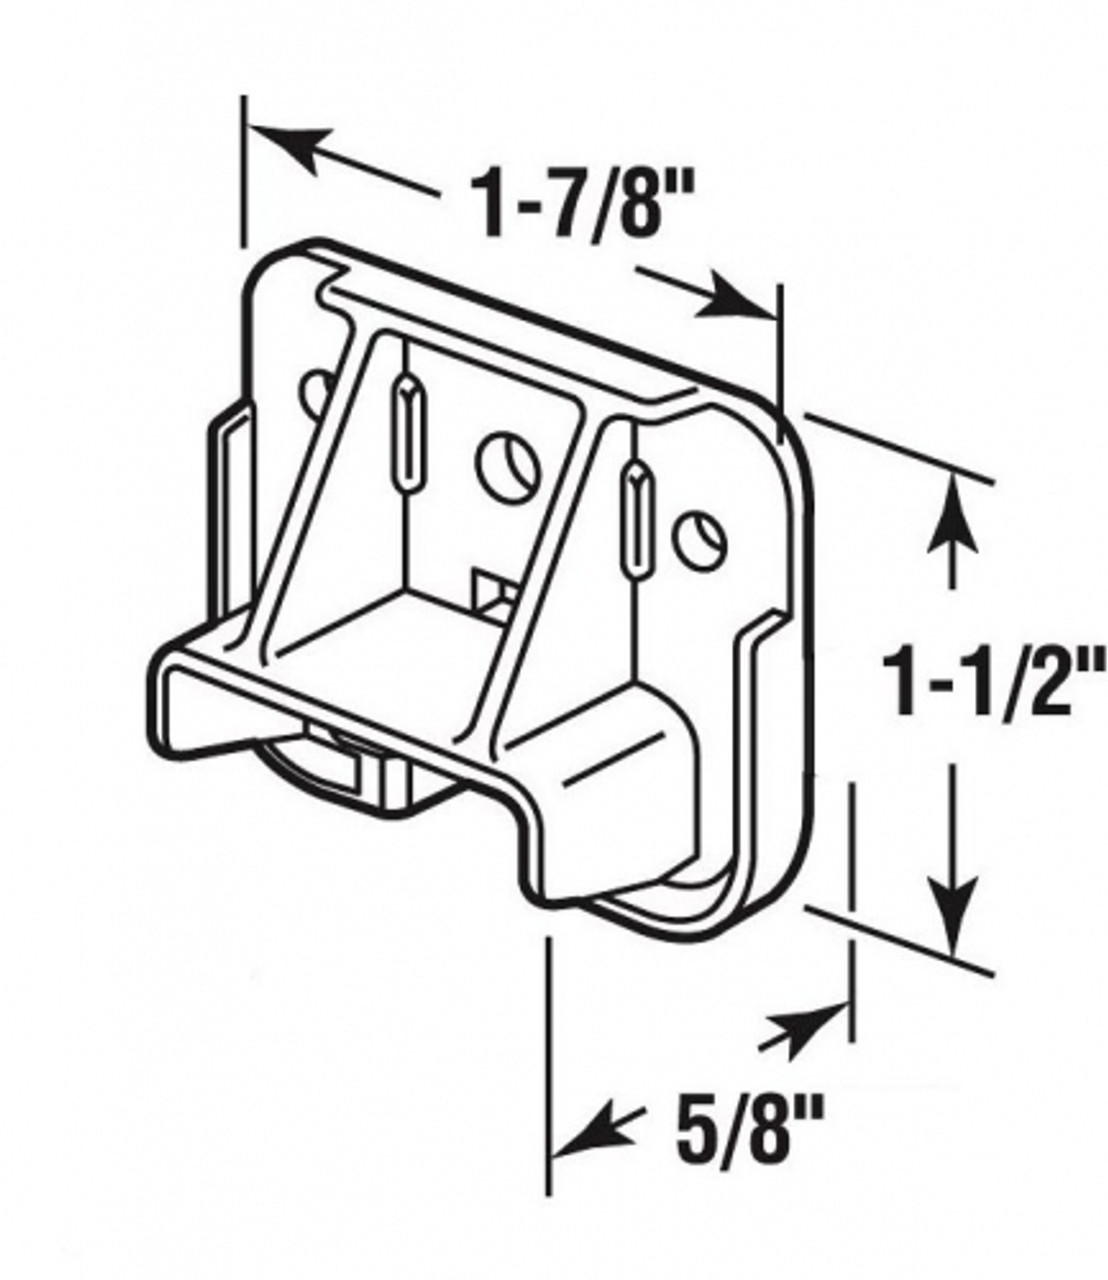 On a dresser drawer, when the drawer is pulled completely out and it tilts down, the most likely cause is a broken drawer guide. This replacement drawer guide is universal and will replace other drawer guides of the same shape and size. Contact customer service for additional information and bulk pricing.